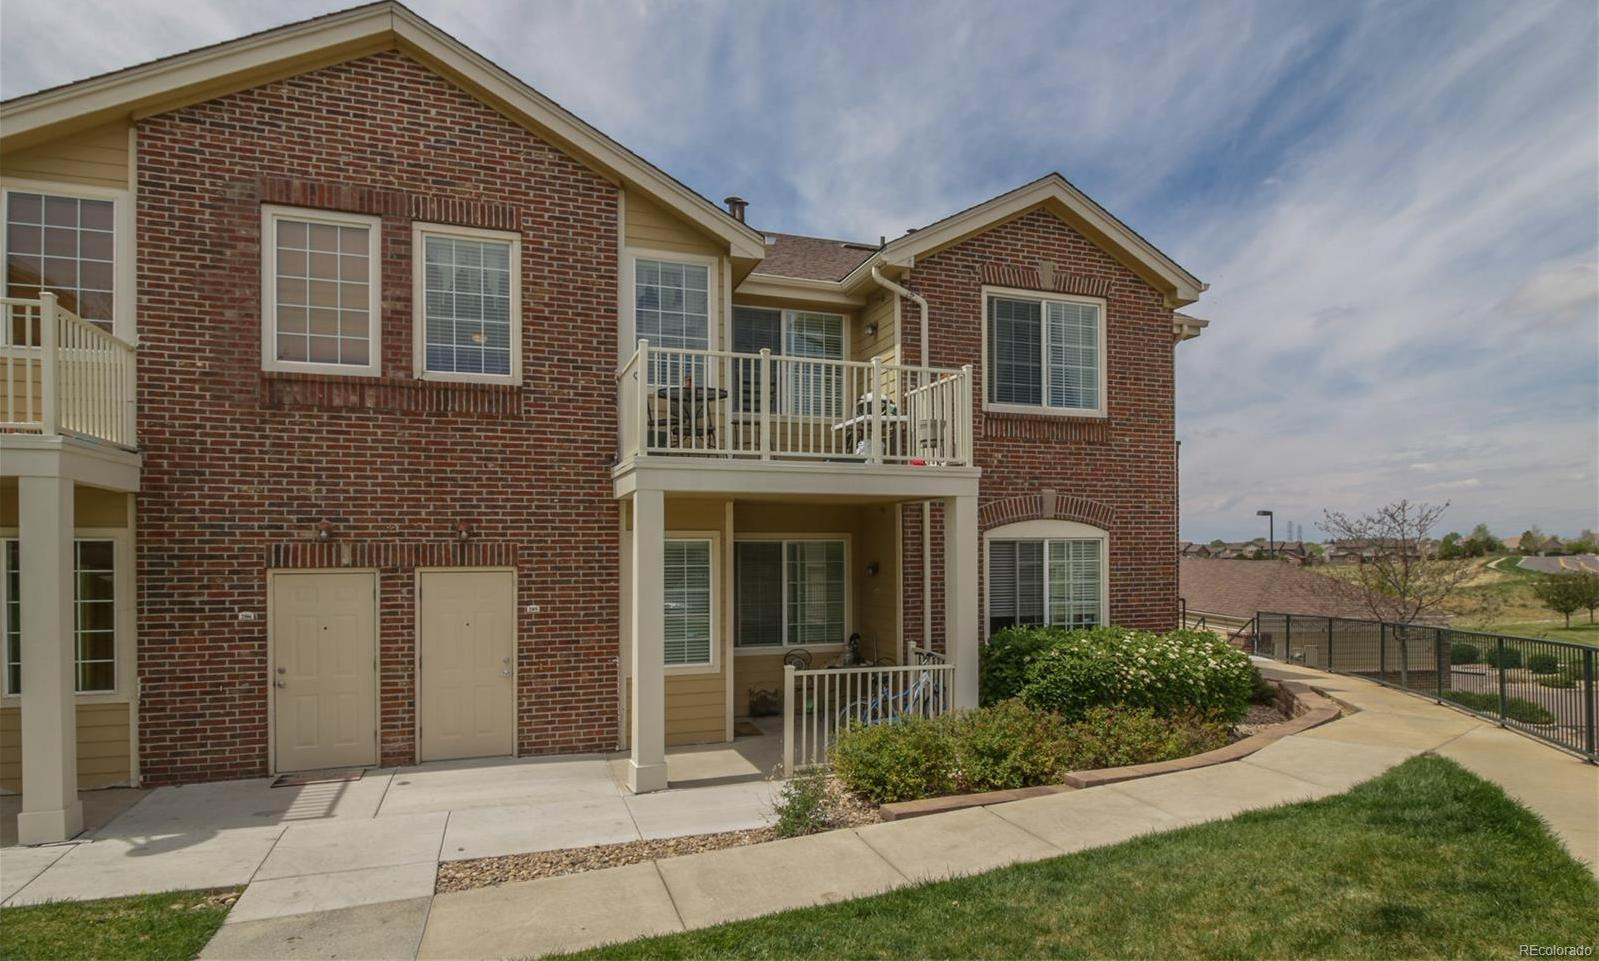 2672 S Cathay Way #205, Aurora, CO 80013 - Estimate and Home Details ...